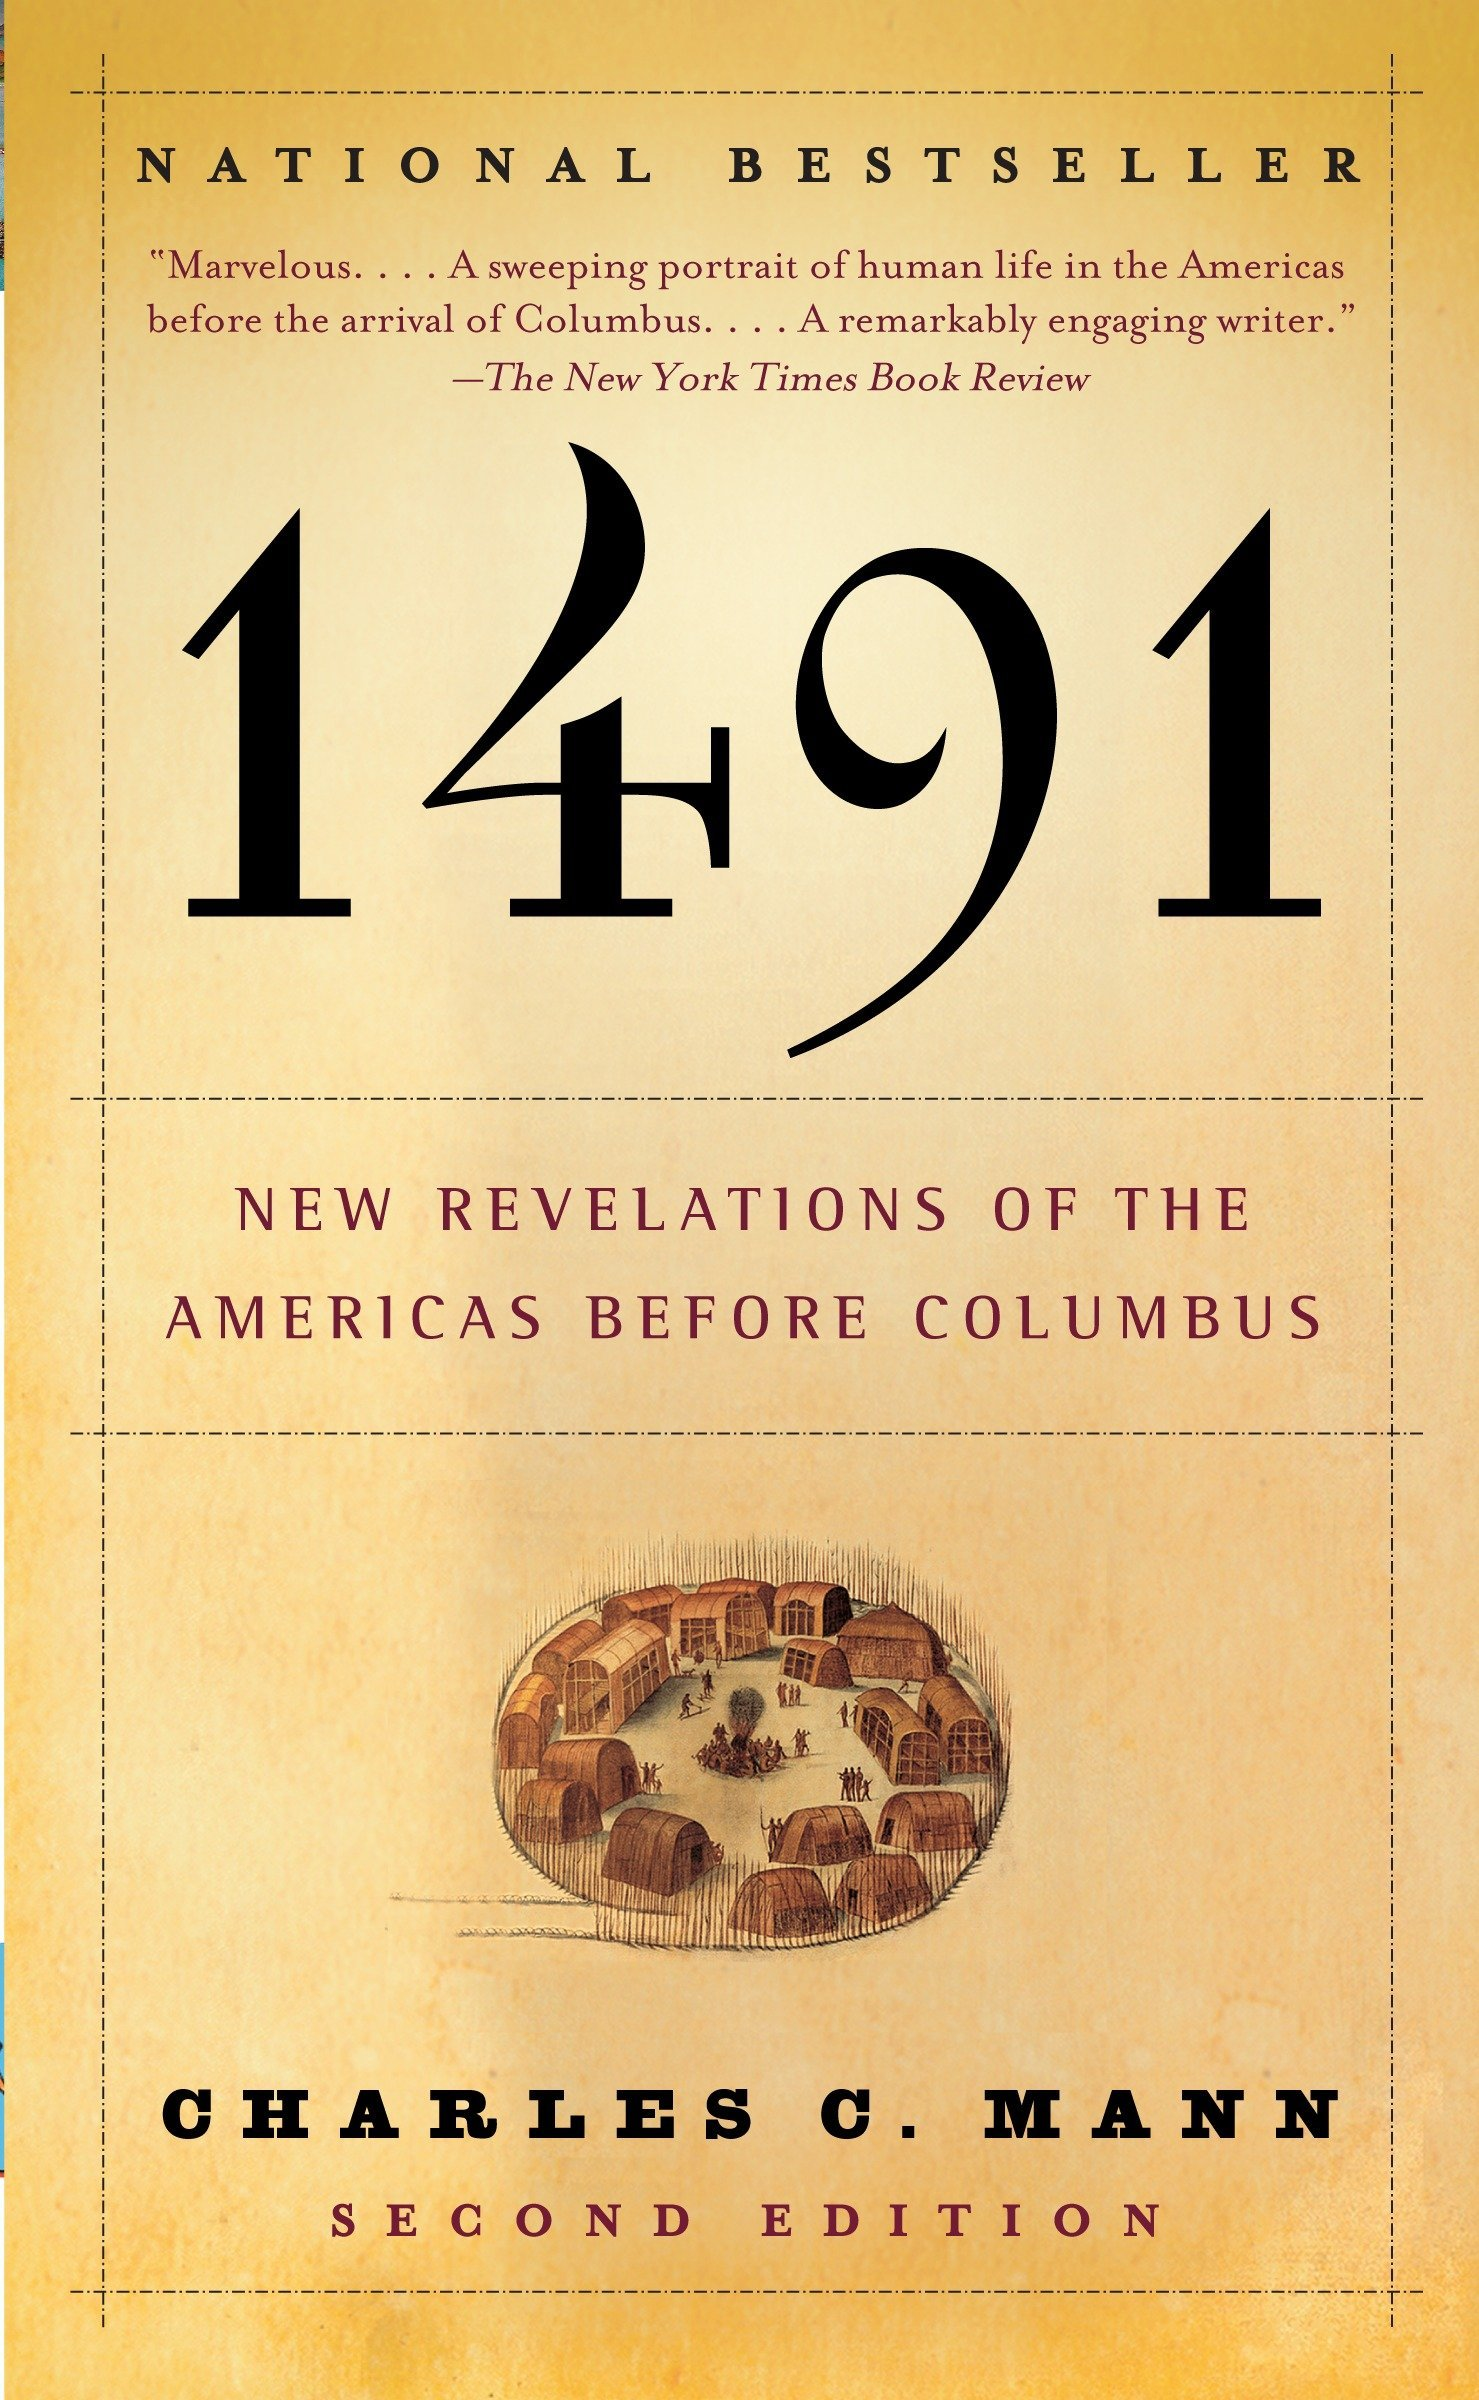 1491: New Revelations of the Americas Before Columbus: Charles C. Mann:  9781400032051: Amazon.com: Books